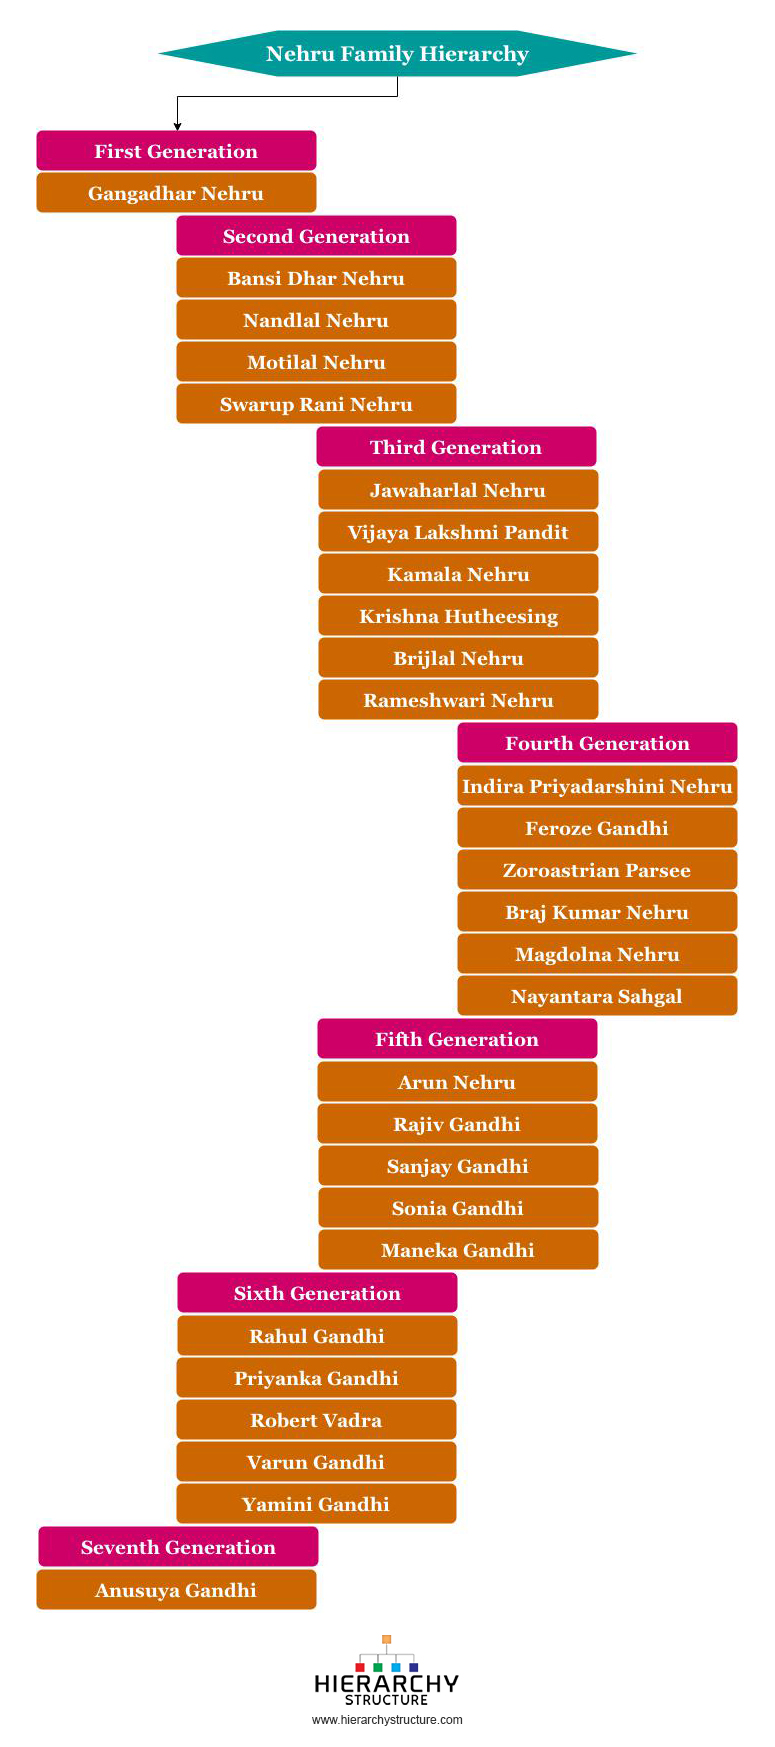 Nehru Family hierarchy